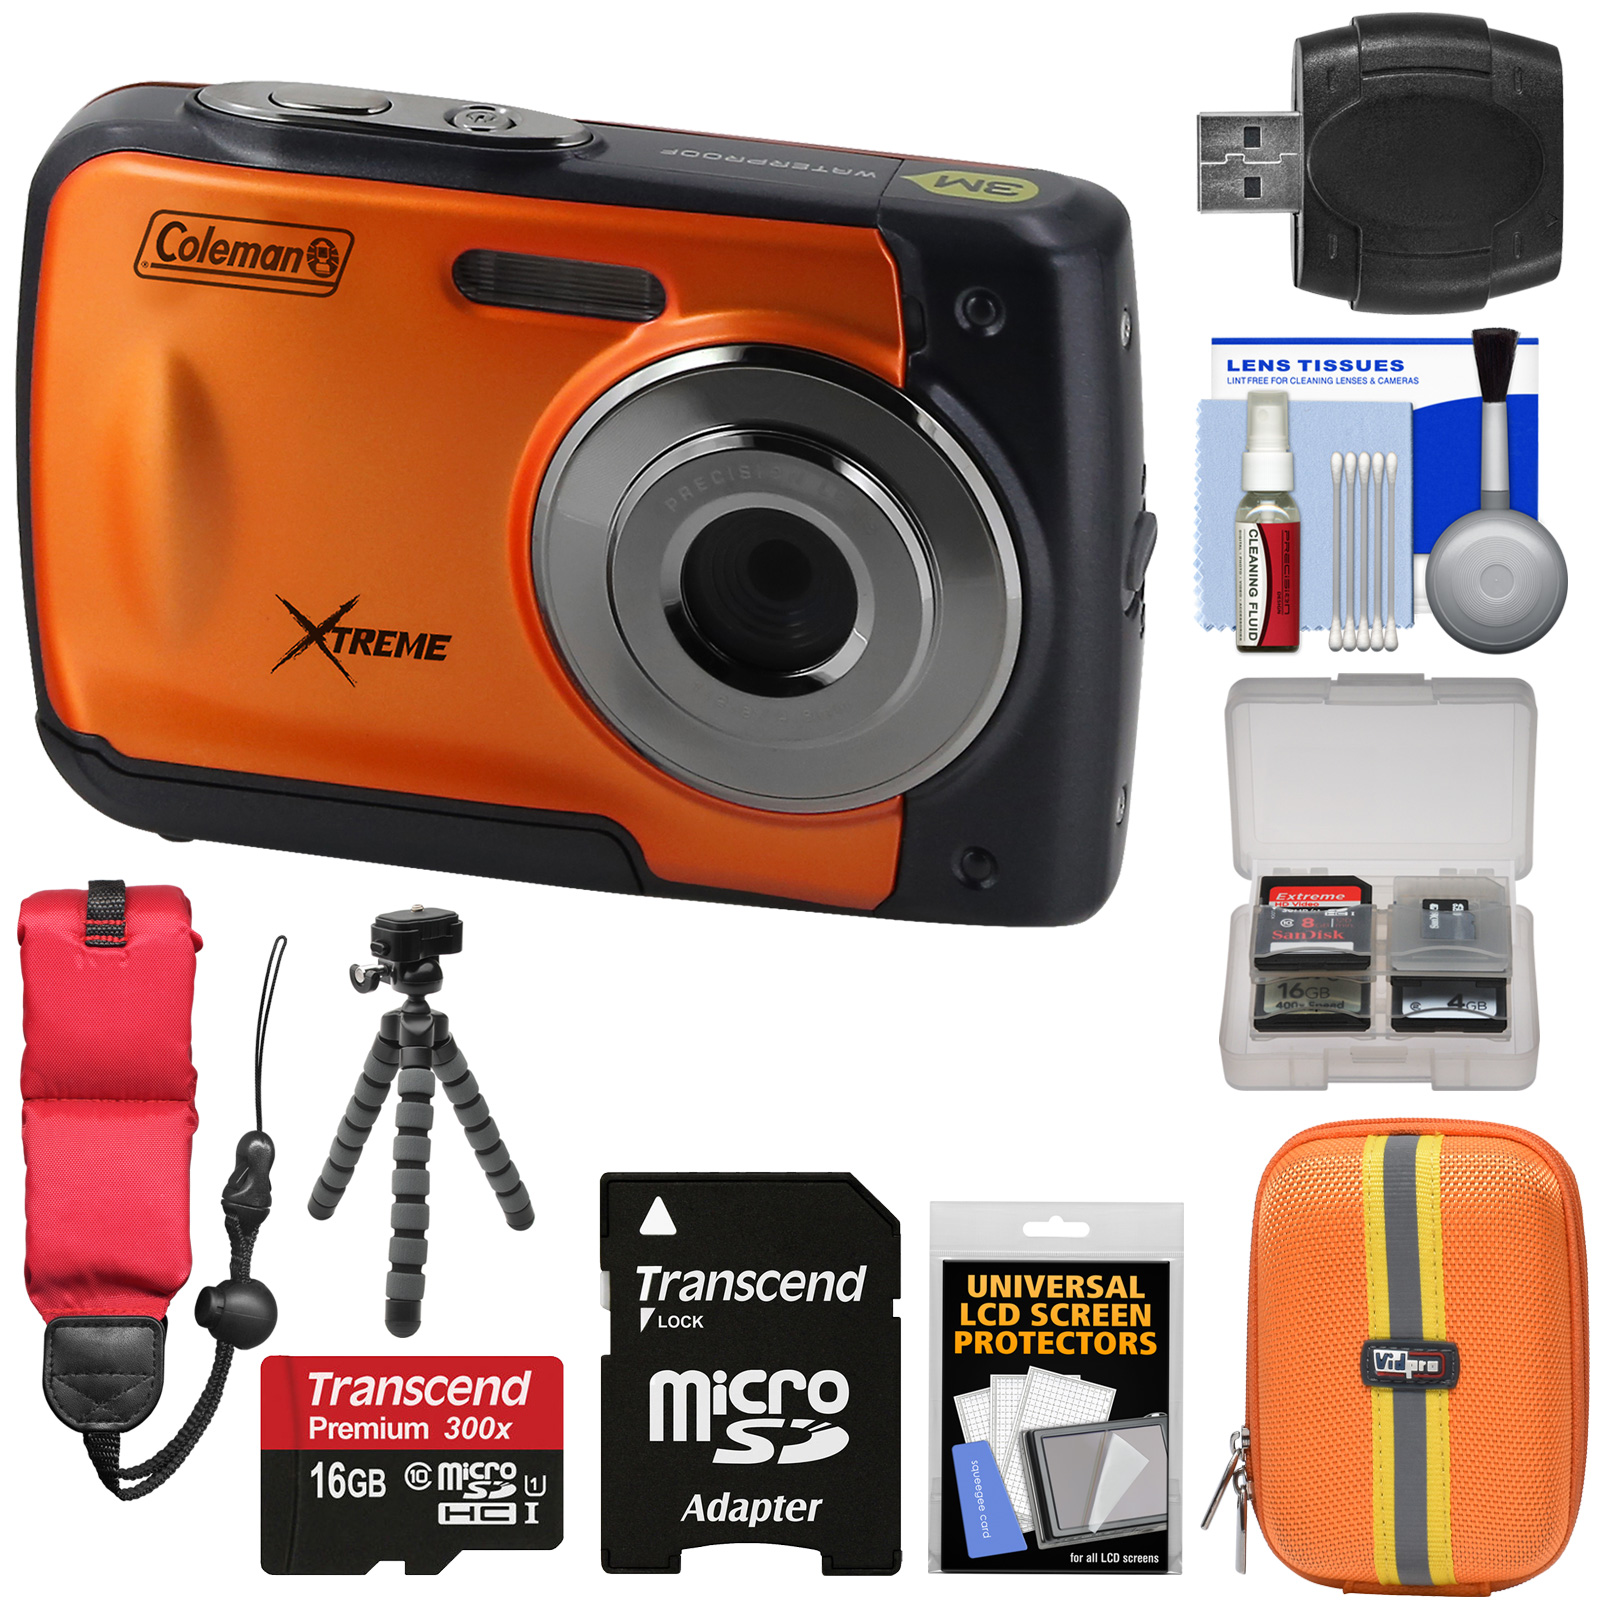 Coleman Xtreme C20WP Shock & Waterproof HD Digital Camera (Black) with 16GB Card + Case + Float Strap + Flex Tripod + Kit